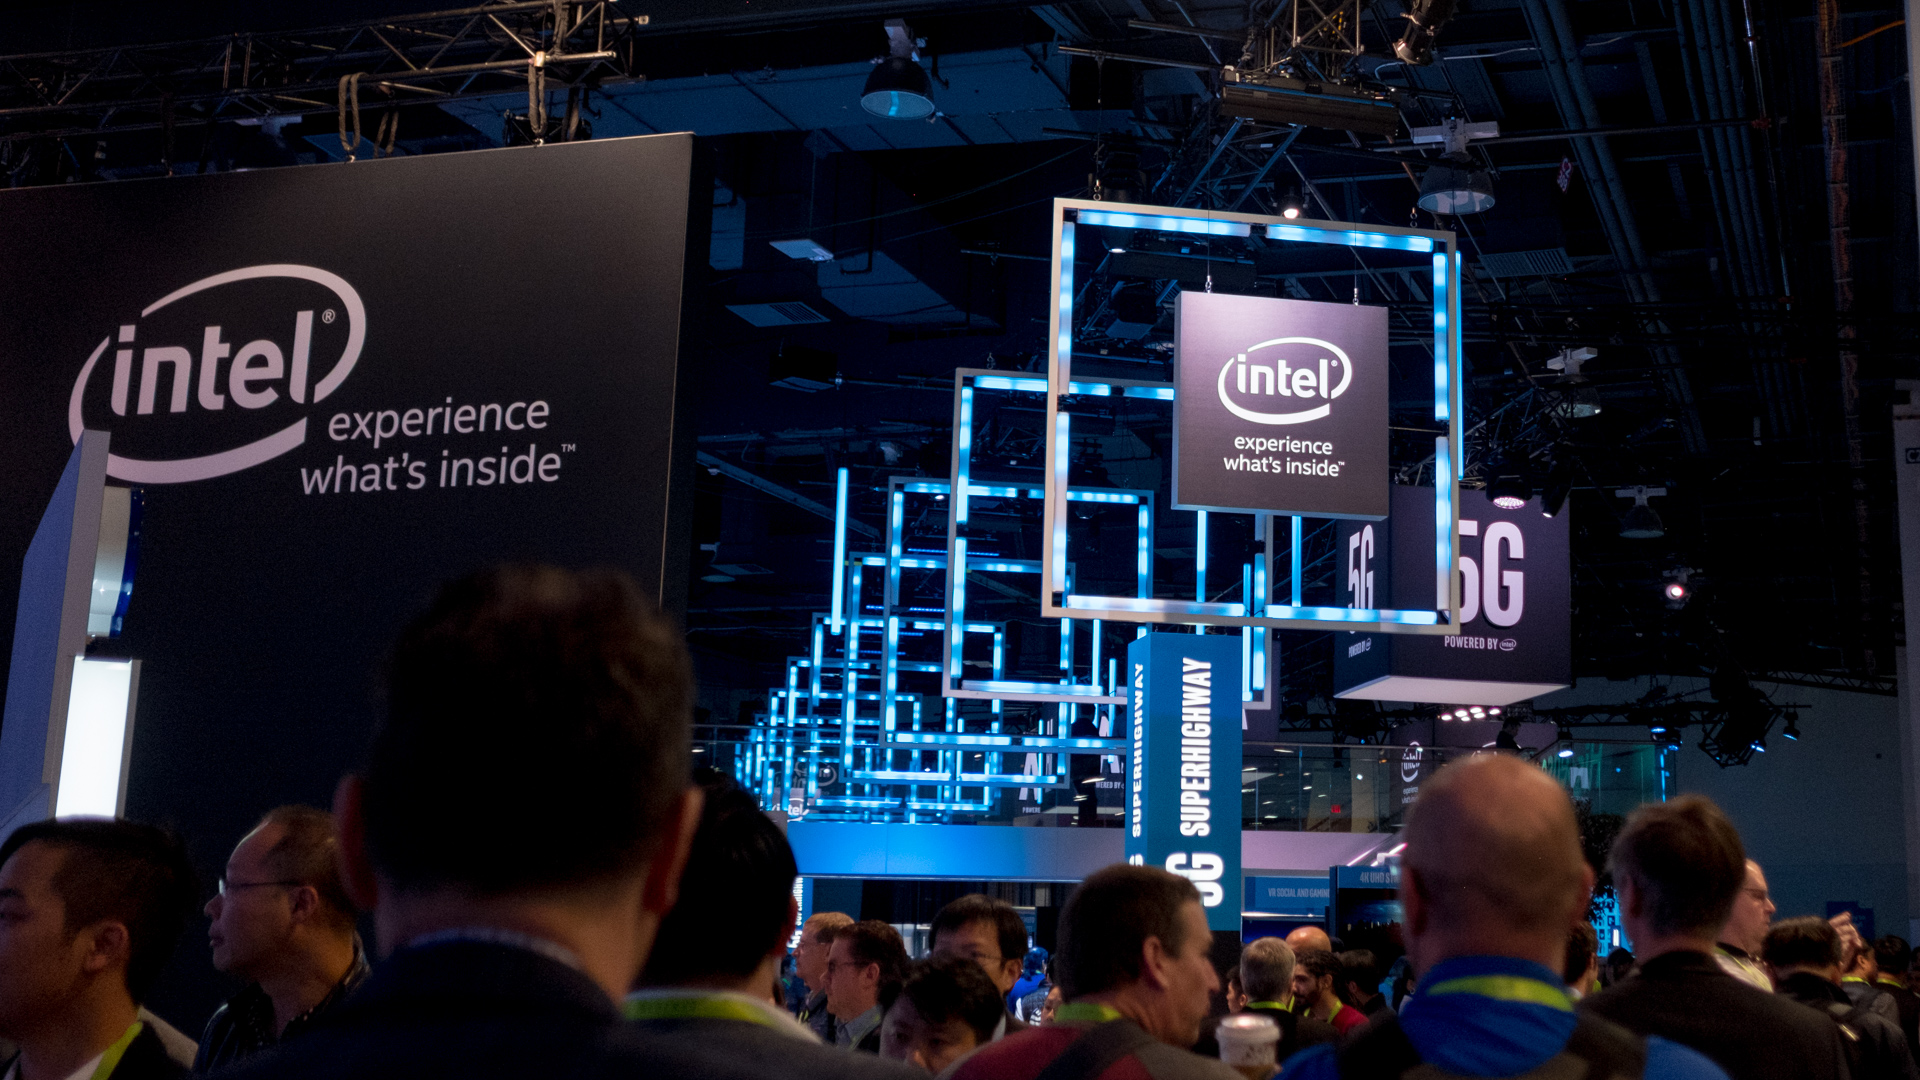 Competing with AMD and Nvidia, Intel comes up with new GPU designs